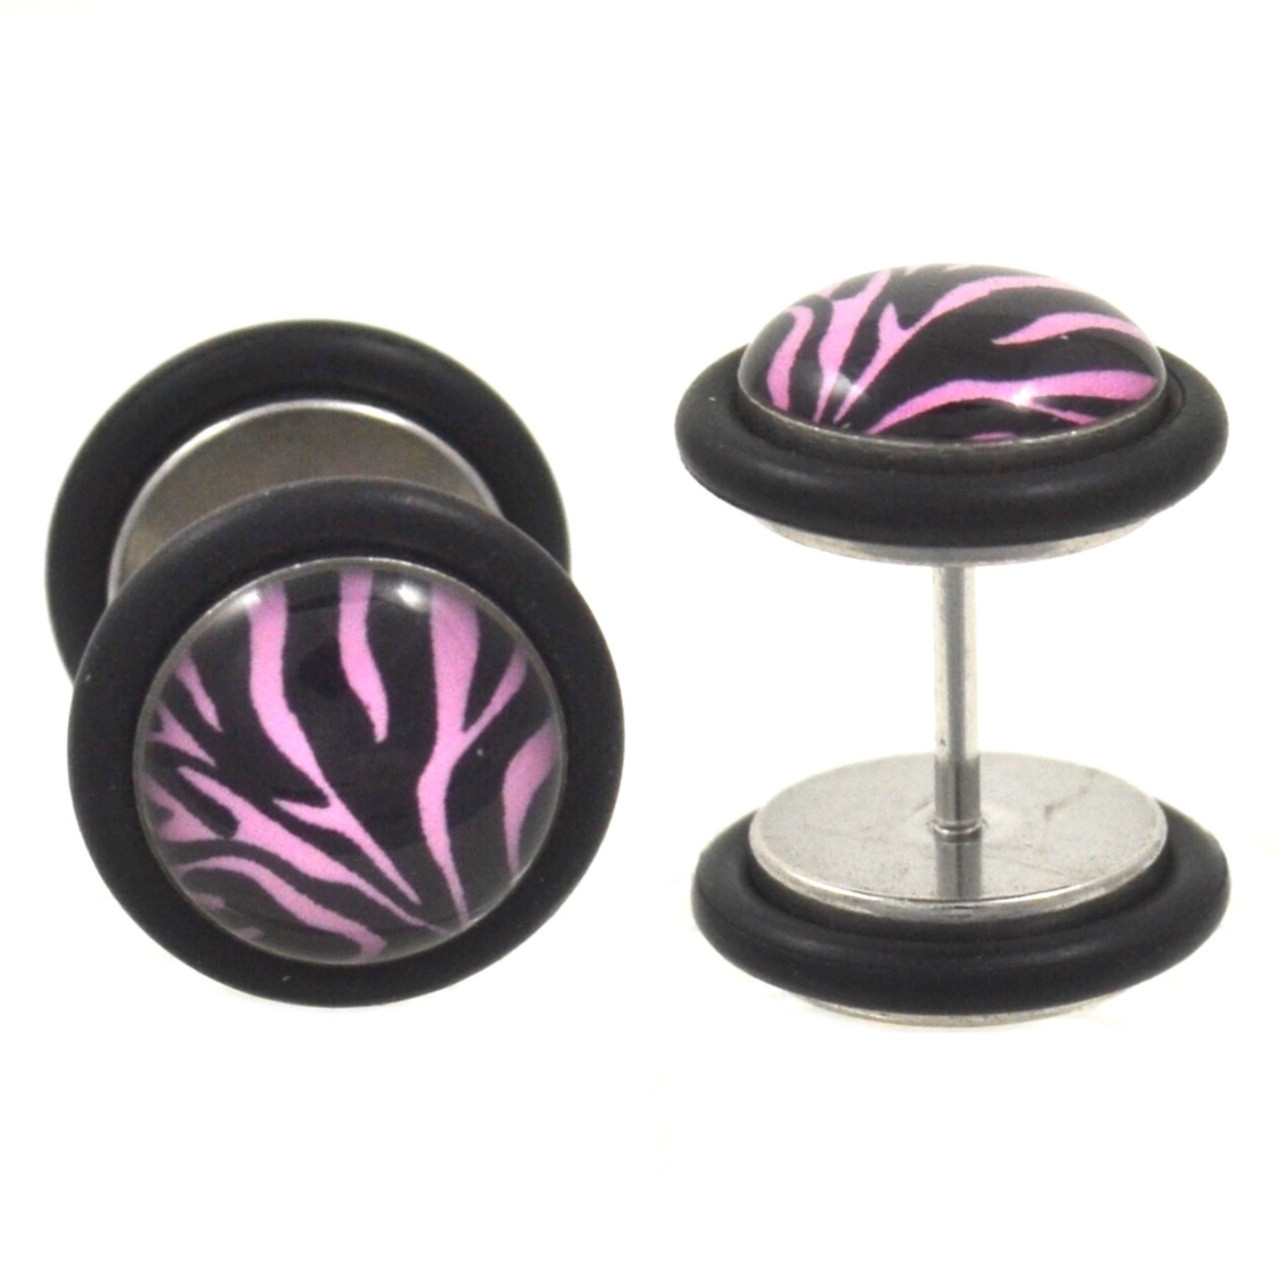 Black Amp Pink Zebra Fake Plug Earrings 00g Look